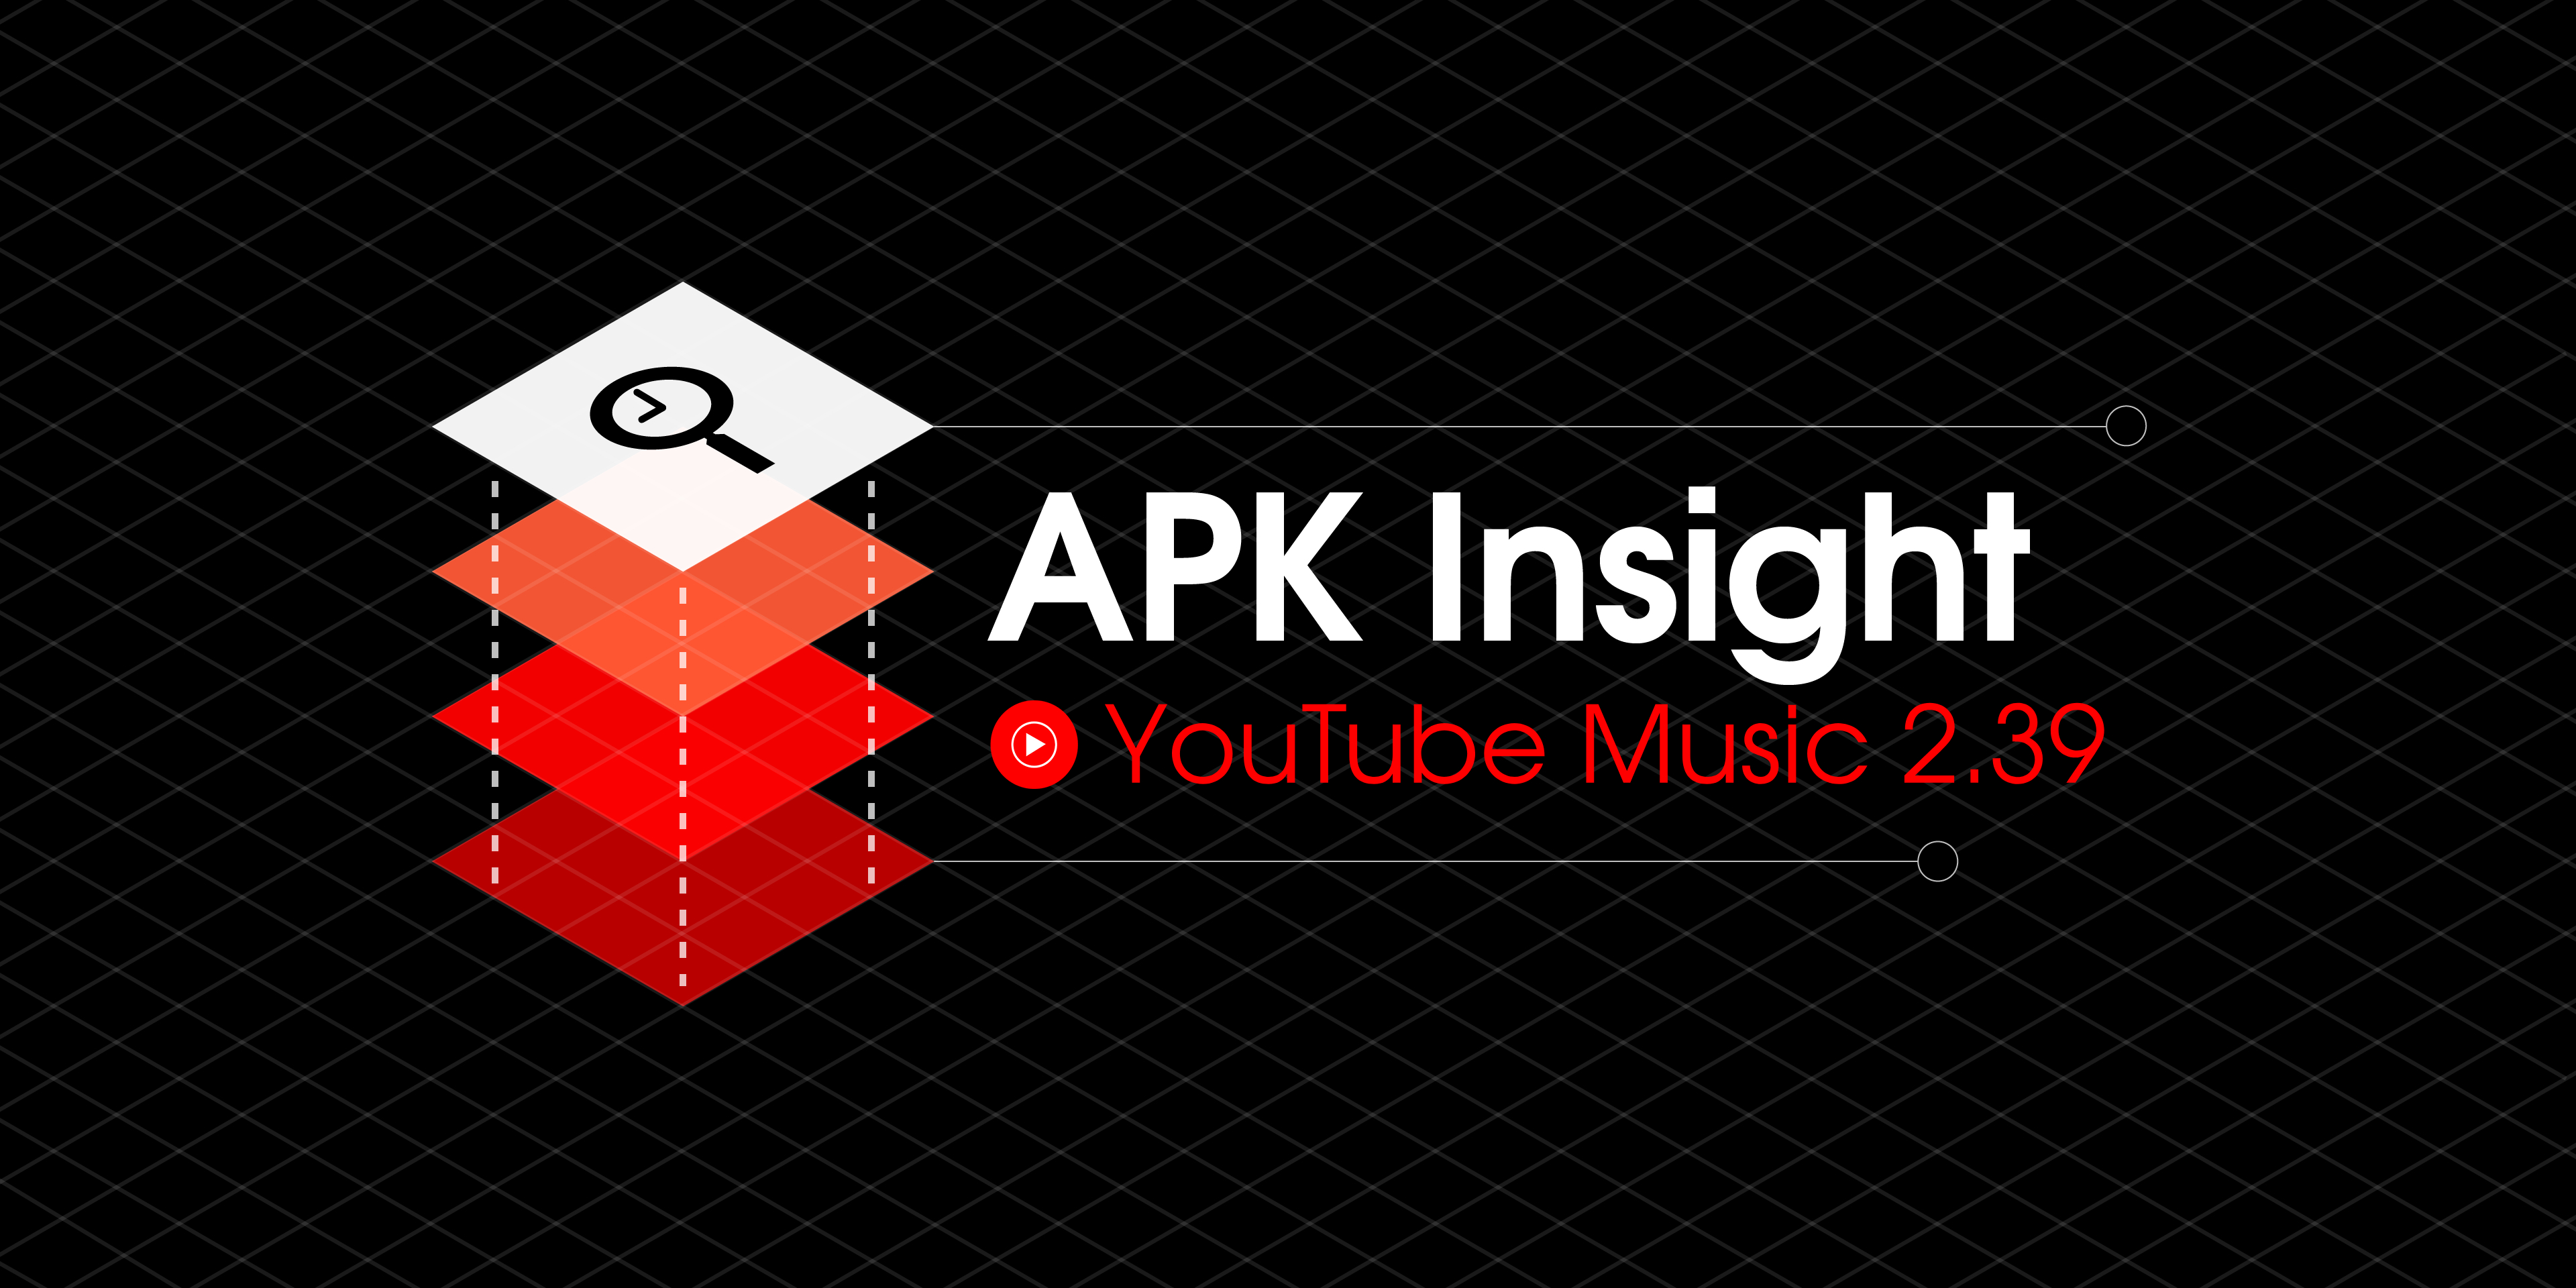 YouTube Music 2.39 bietet separate Audio- und Videoqualität für Offline-Downloads [APK Insight]